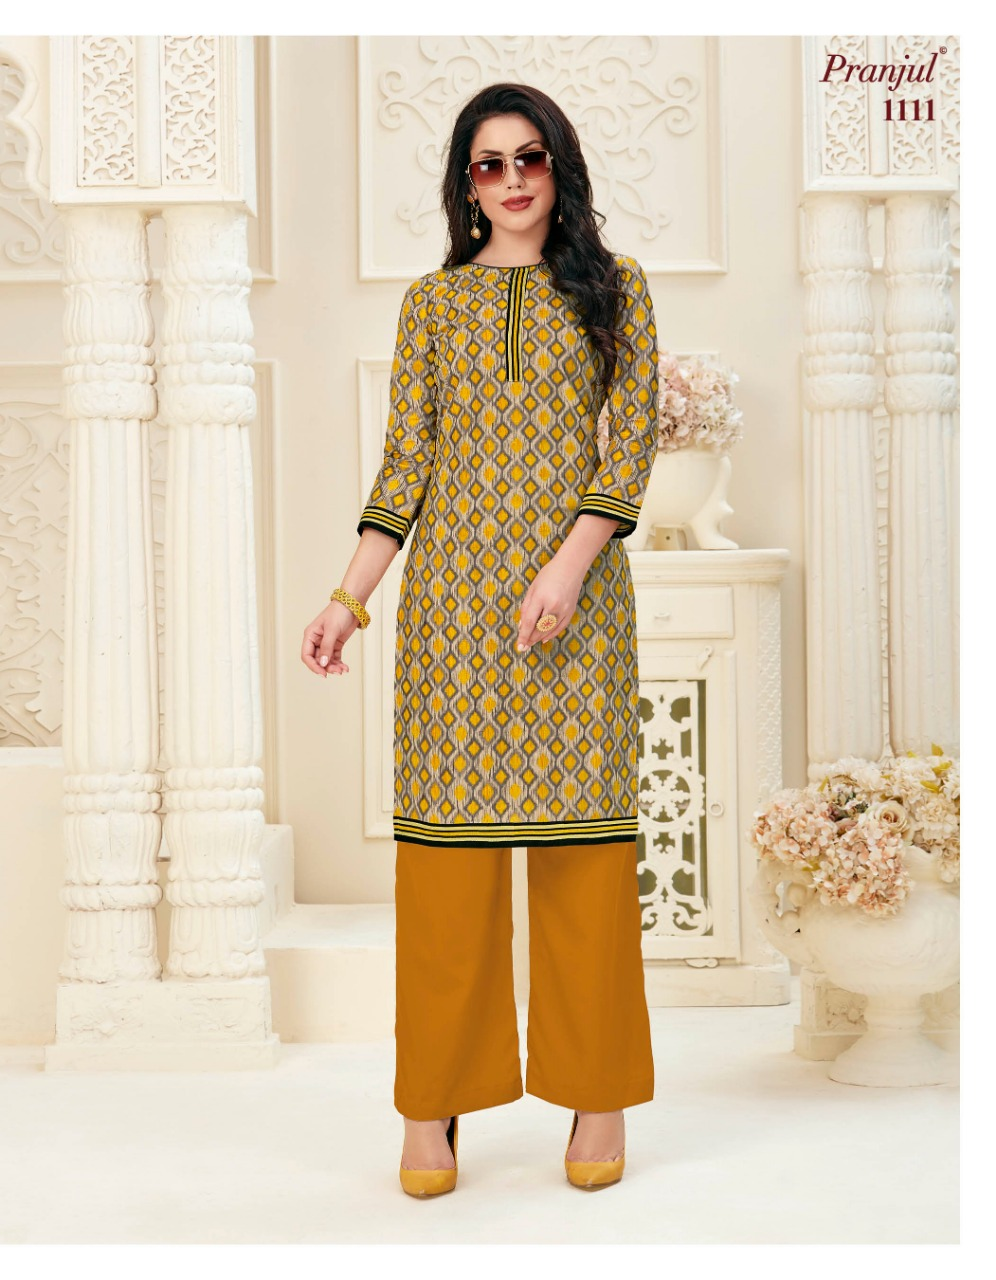 Pranjul Pari Vol 1 Kurti Wholesale Catalog 20 Pcs 17 - Pranjul Pari Vol 1 Kurti Wholesale Catalog 20 Pcs